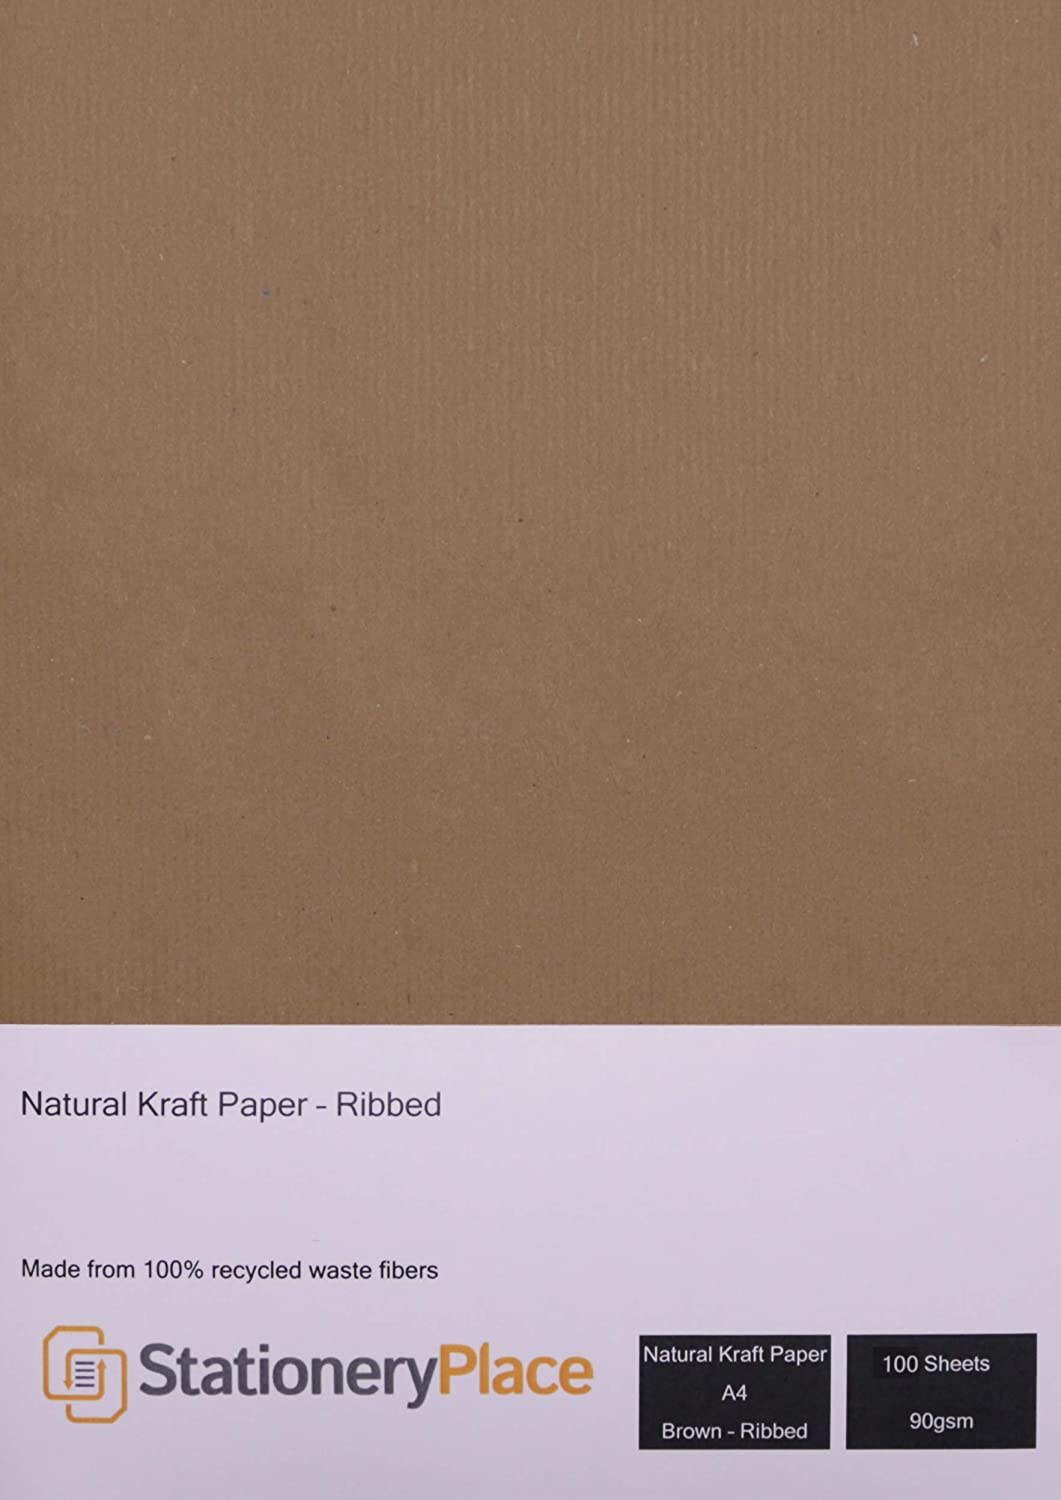 Stationery Place Kraft Card Stationery Place Brown Ribbed Recycled Natural Kraft Paper - A4 90 Gsm 100 Sheet Pack